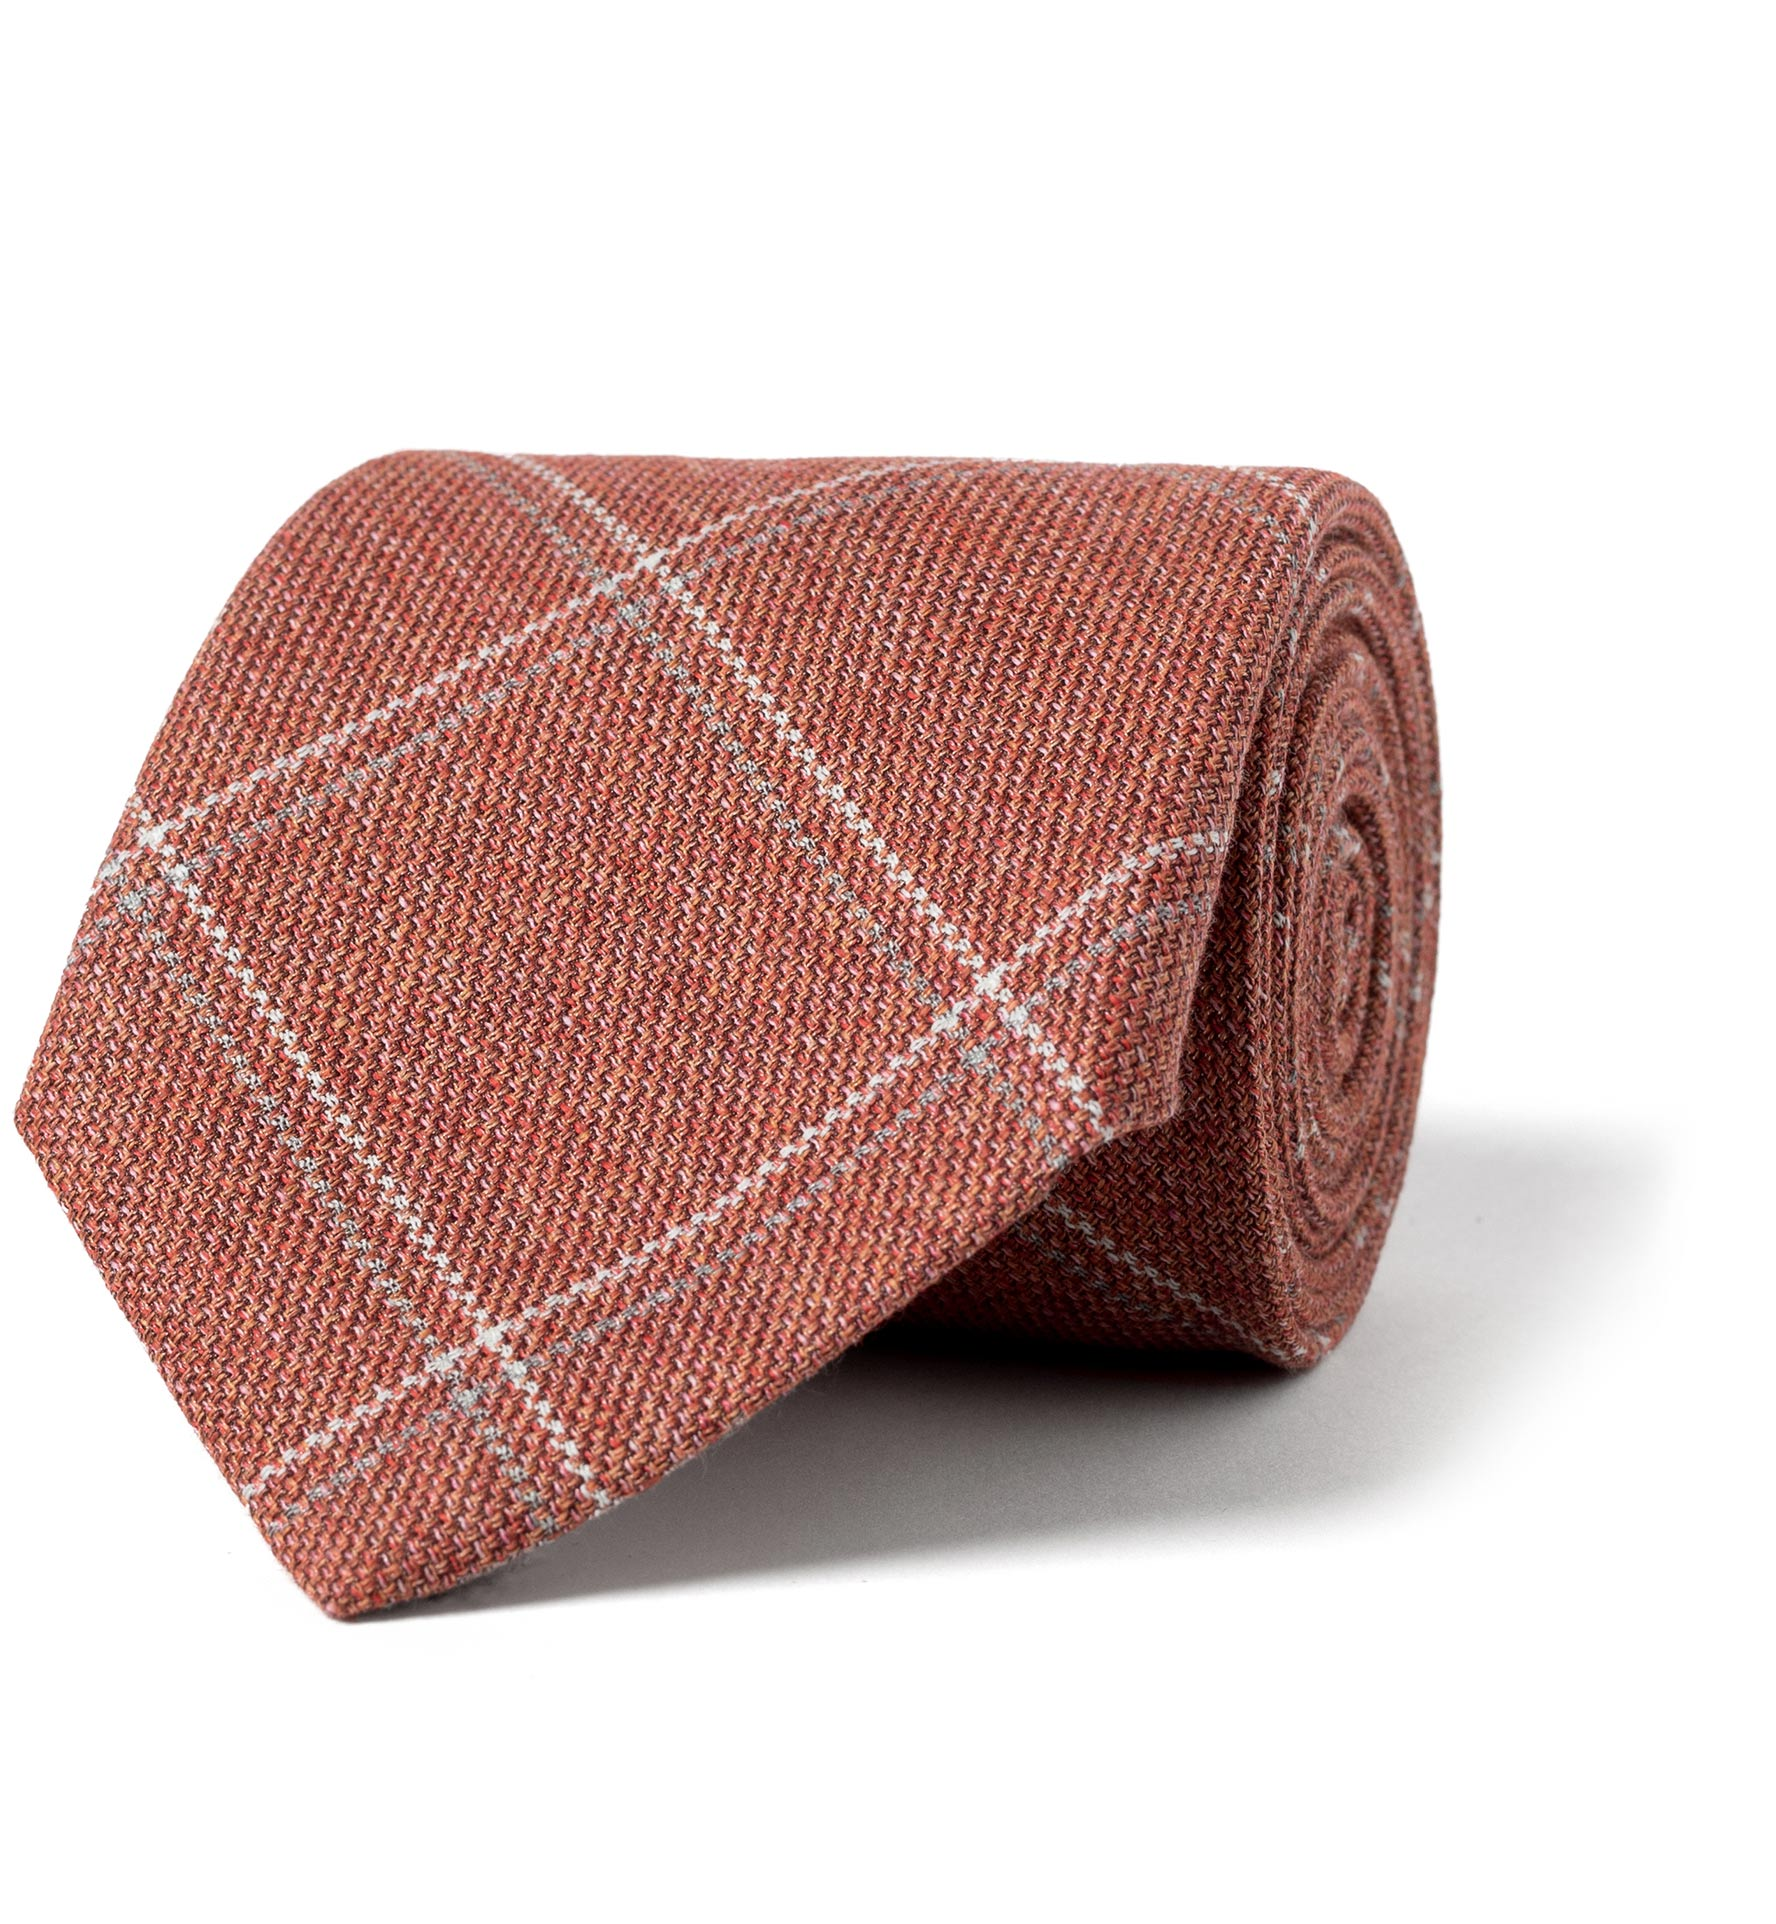 Zoom Image of Sienna Cotton Wool and Silk Windowpane Tie